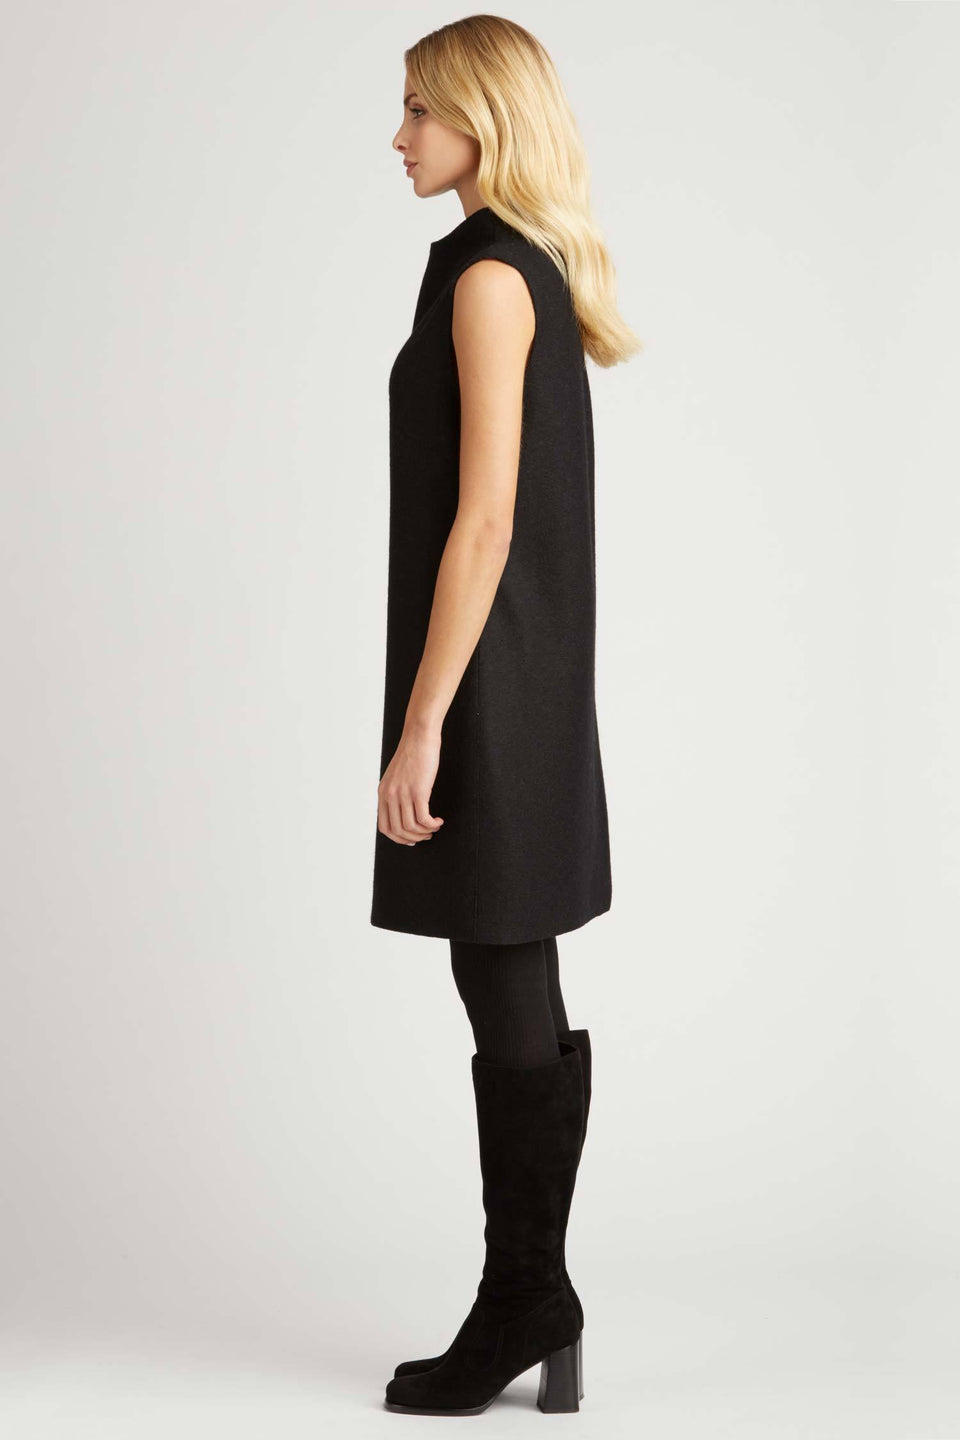 Boiled Wool Sleeveless Dress in Black